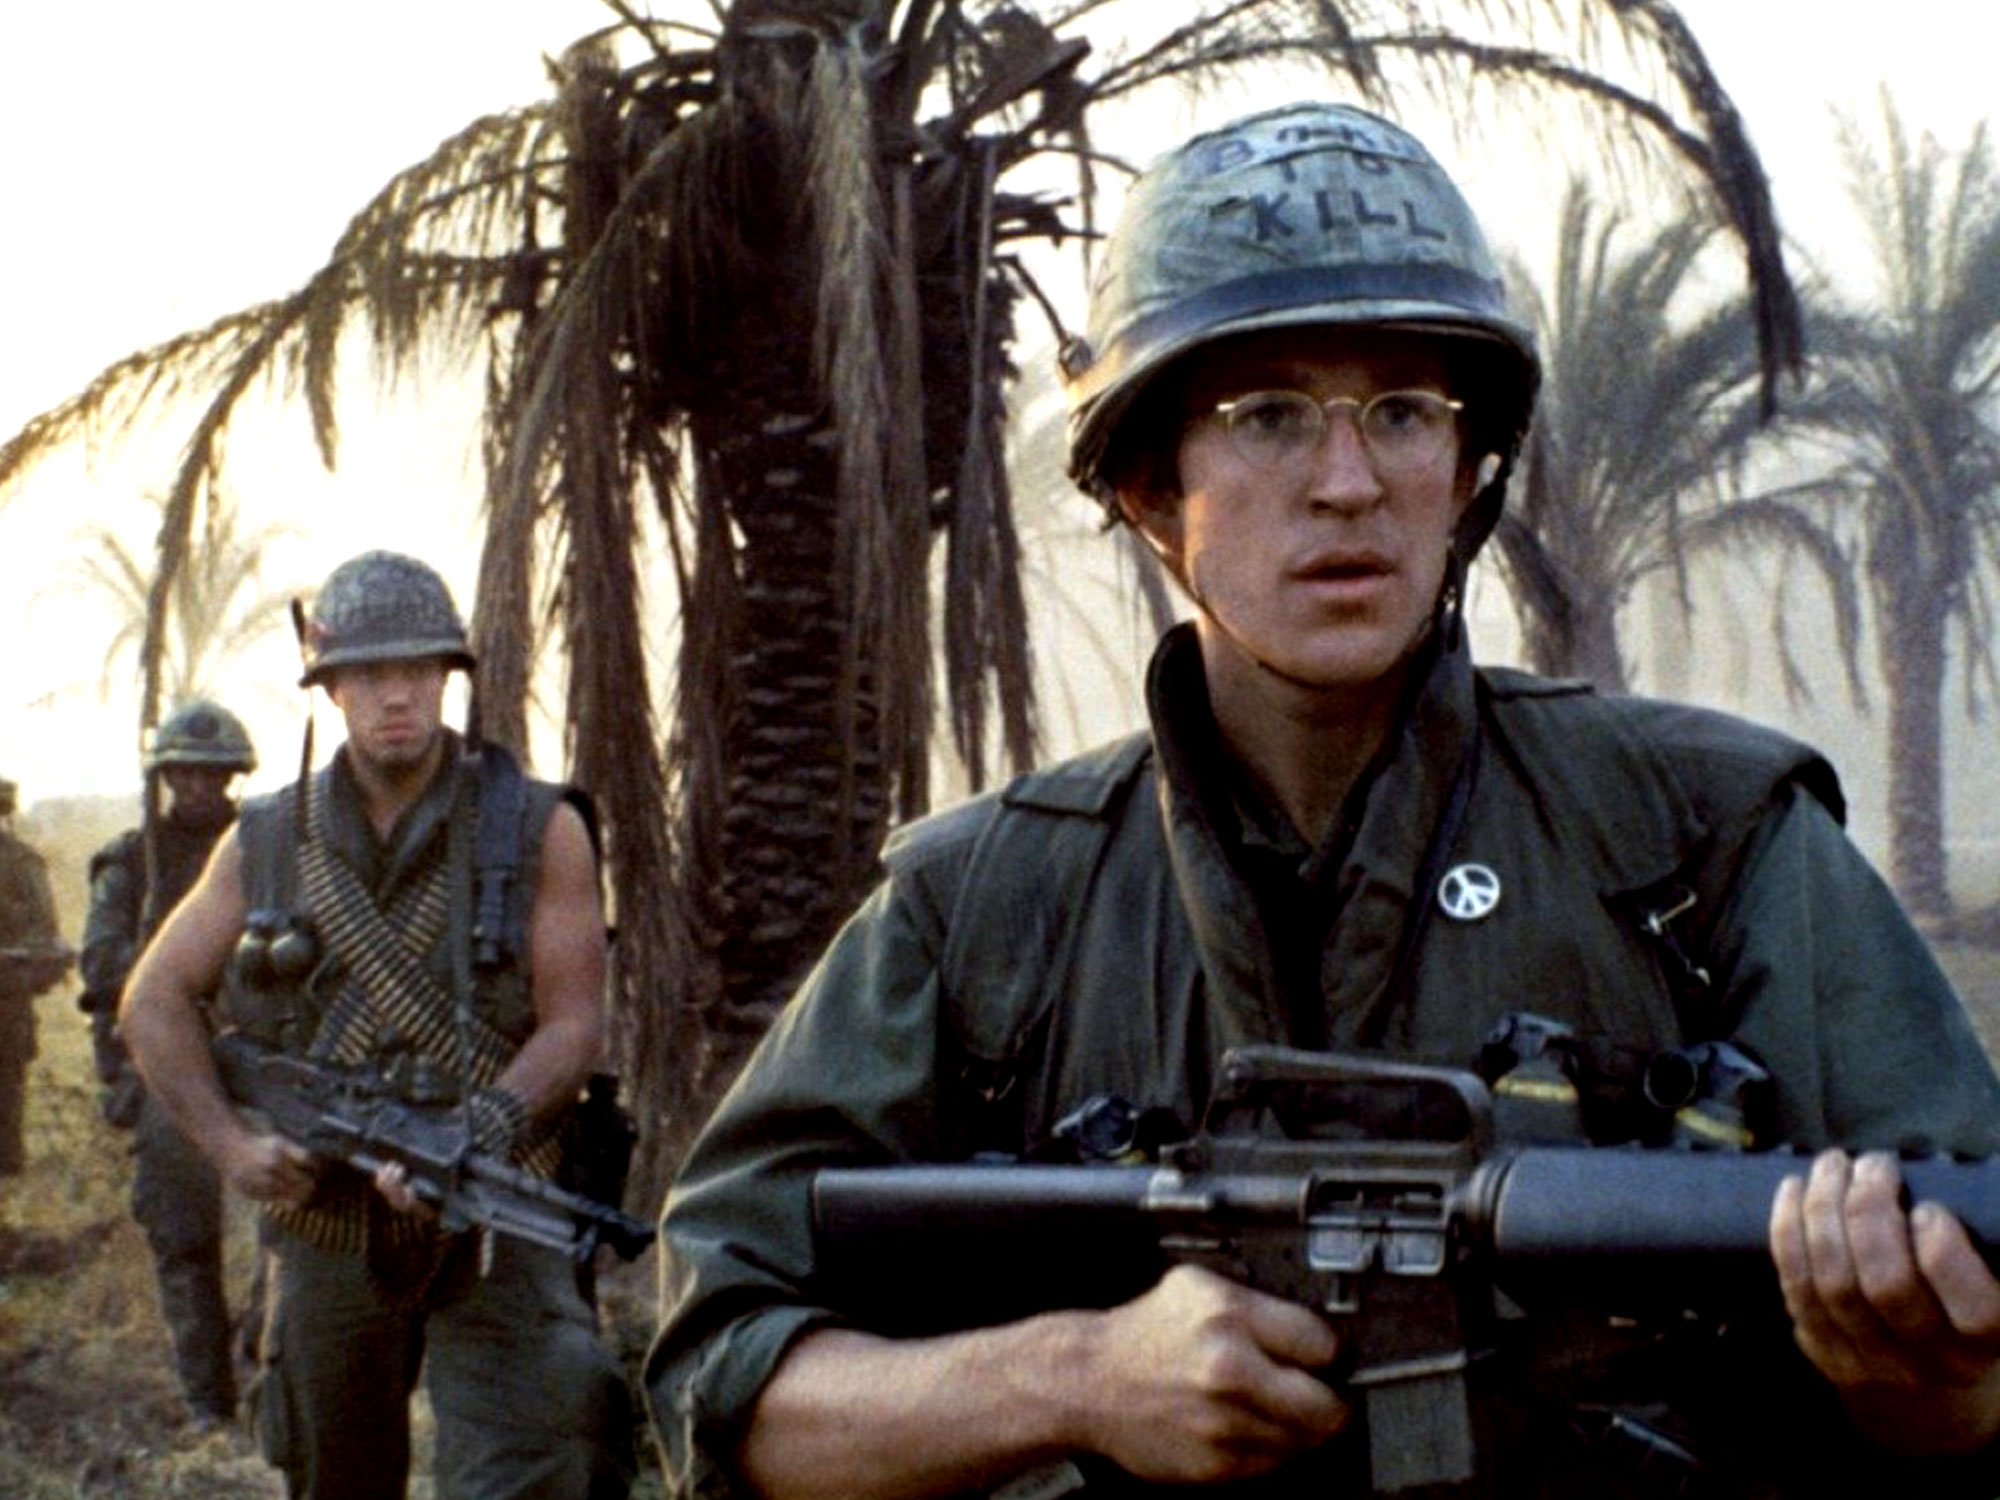 Full Metal Jacket and the personal horrors of war